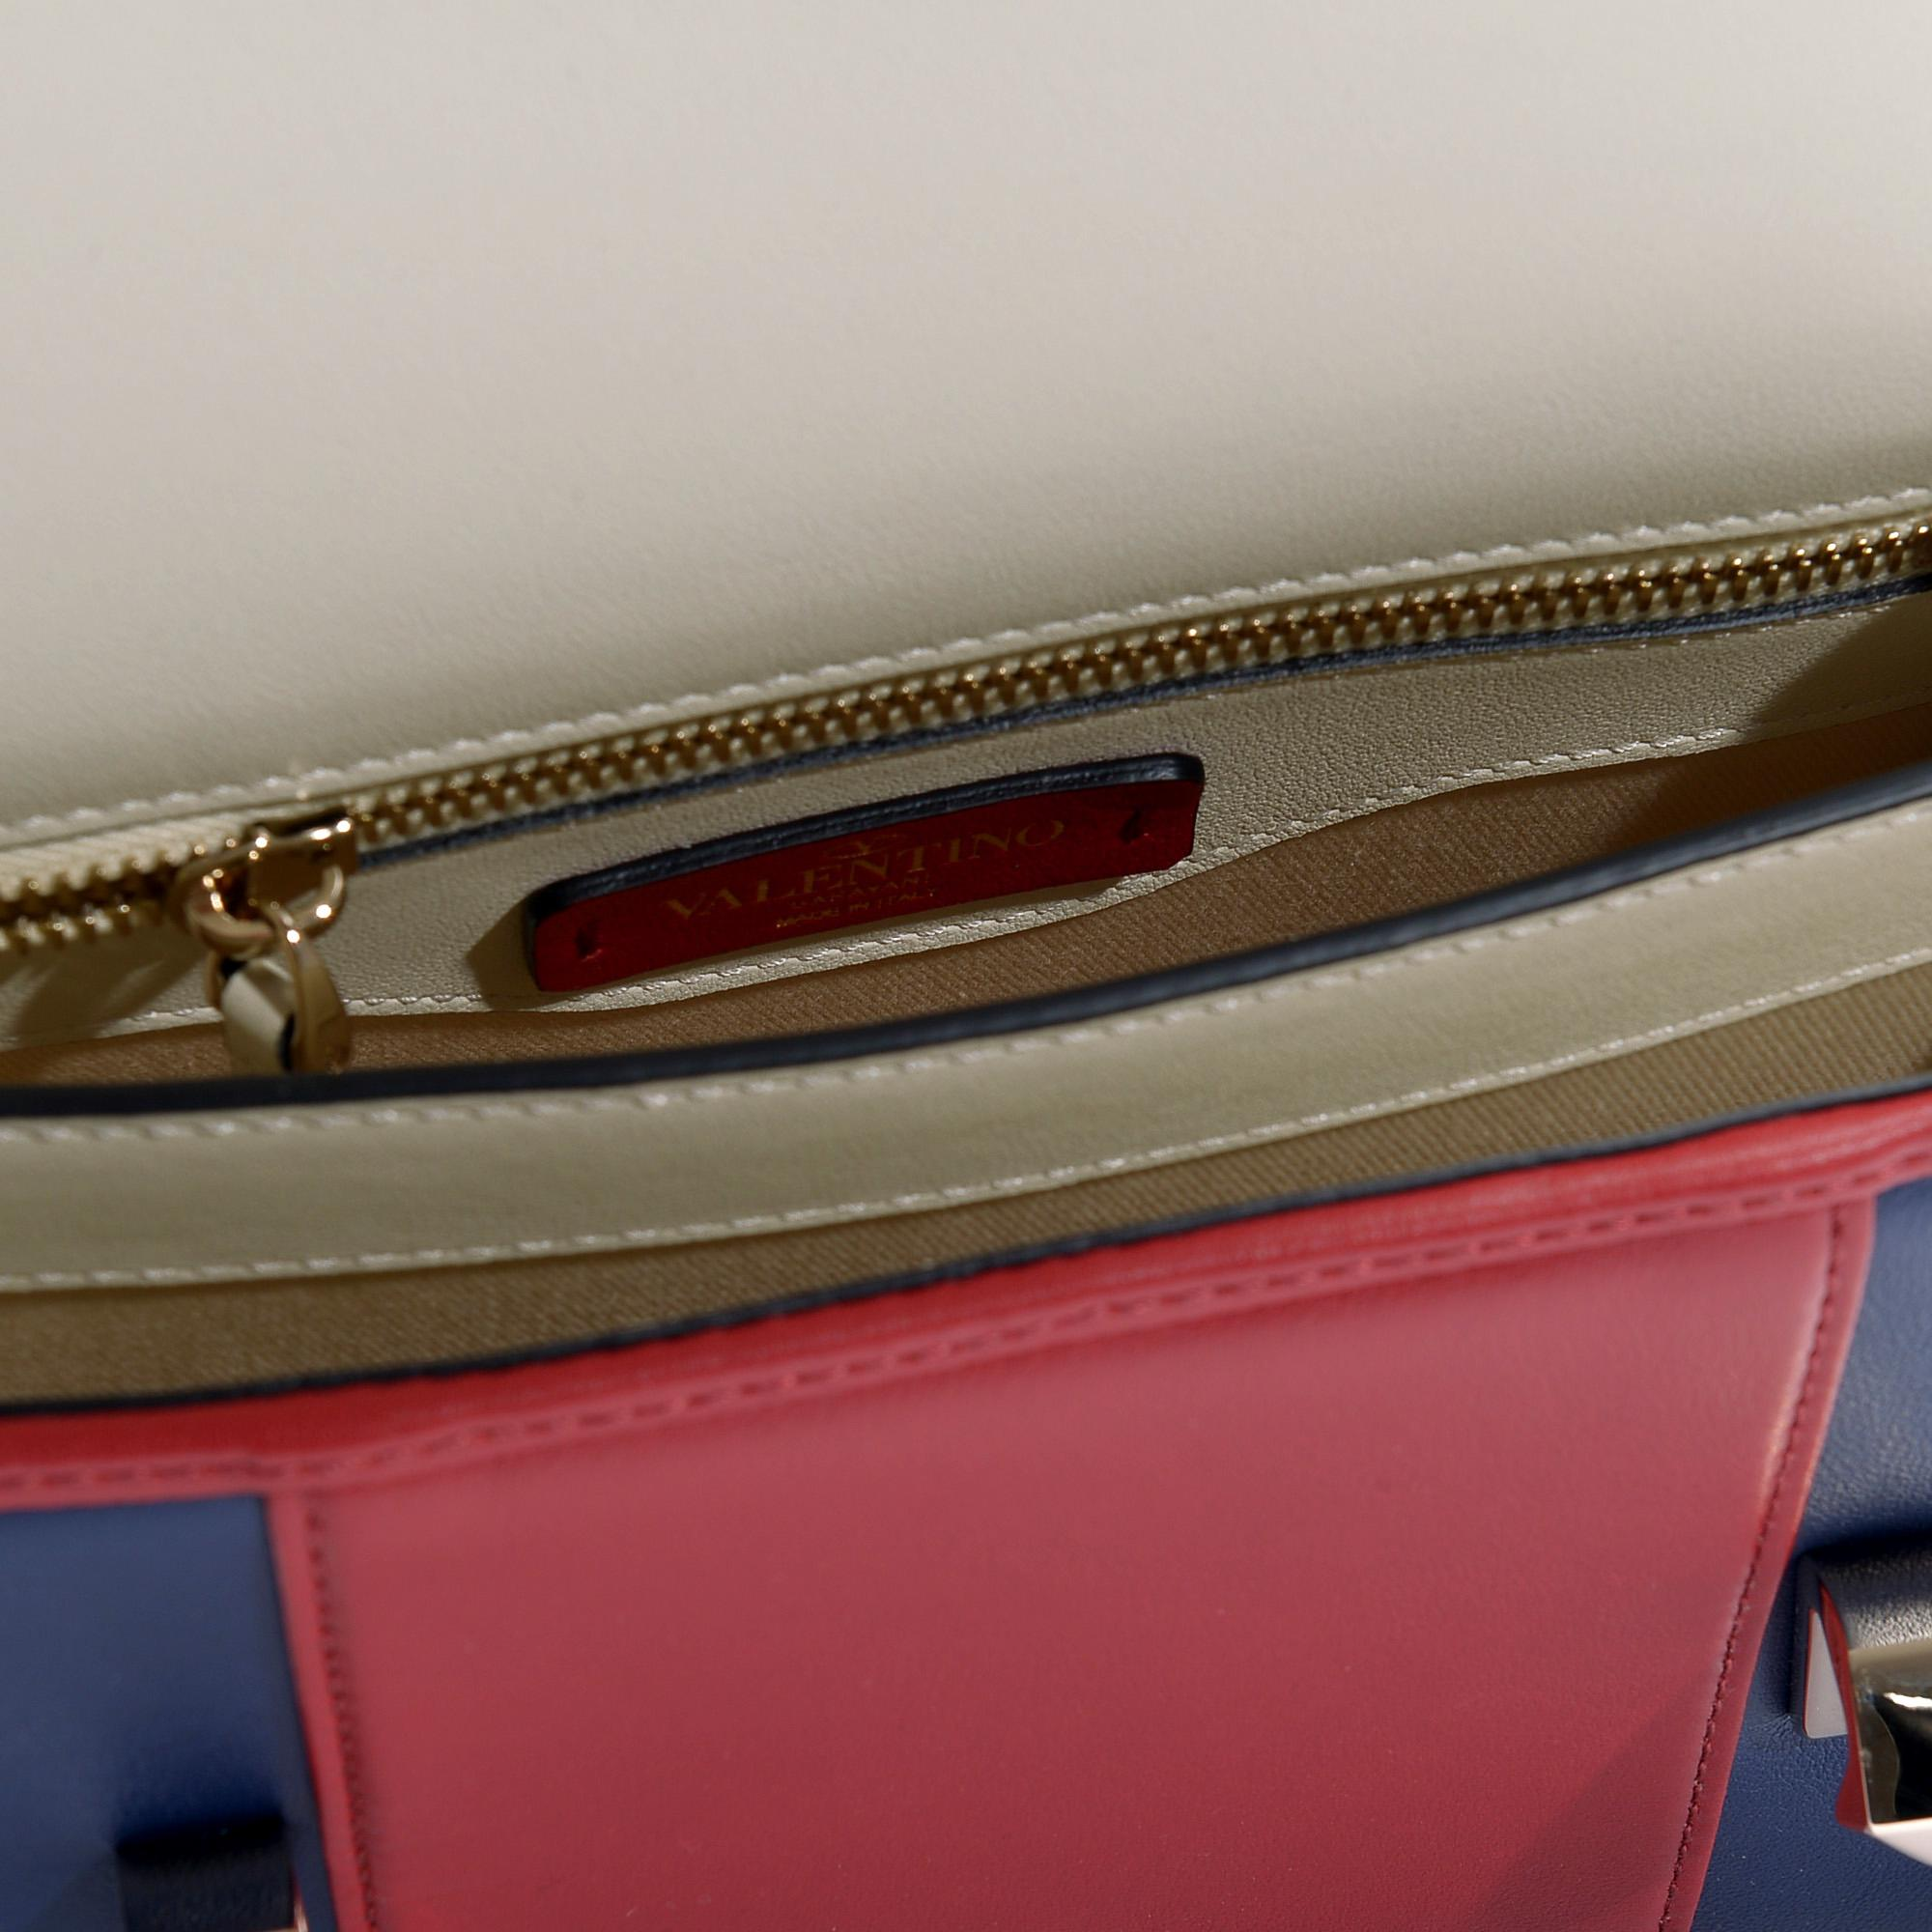 827a18fea054 valentino-Multicoloured-Uptown-Small-Shoulder-Bag-In-Ivory-Red-And-Blue-Grained-Calfskin.jpeg